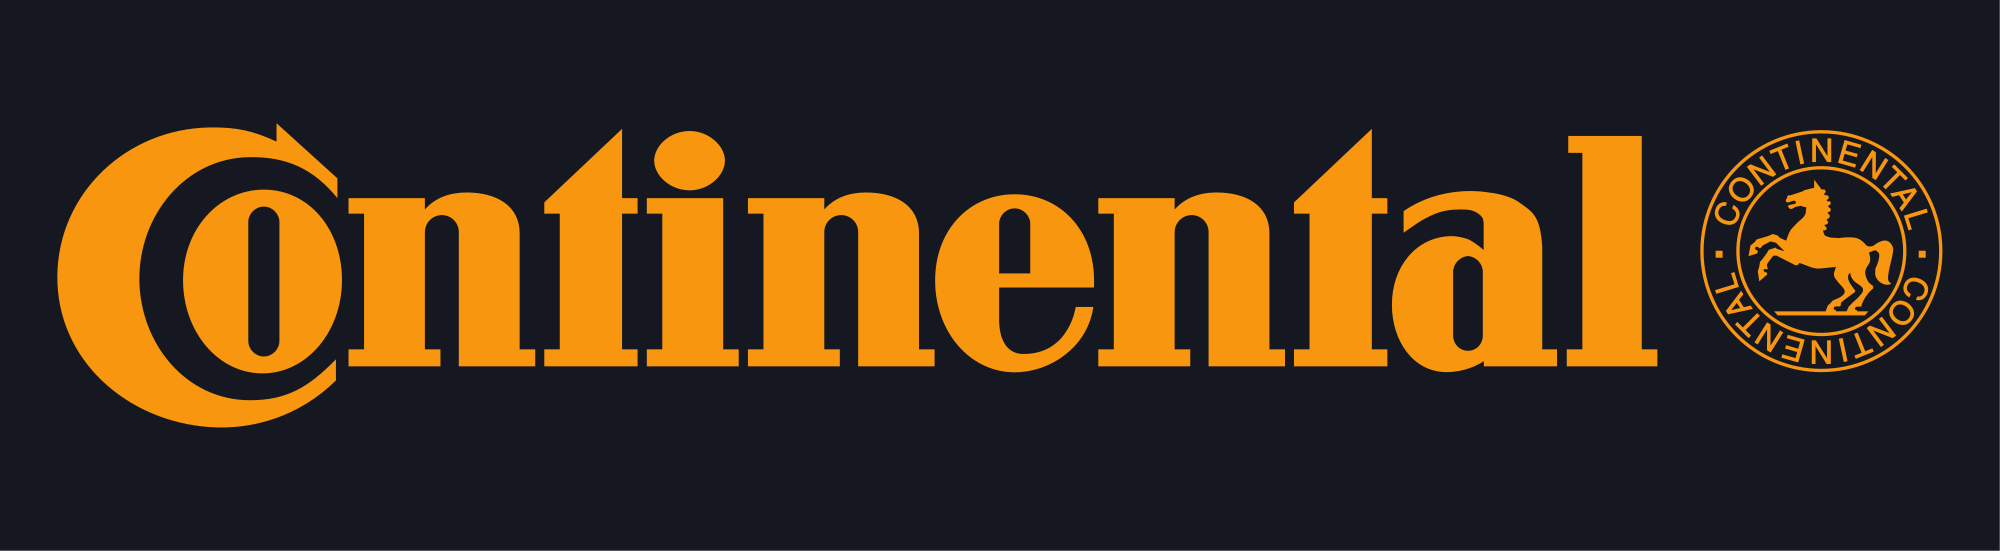 Continental Ag Logo.png - Continental, Transparent background PNG HD thumbnail